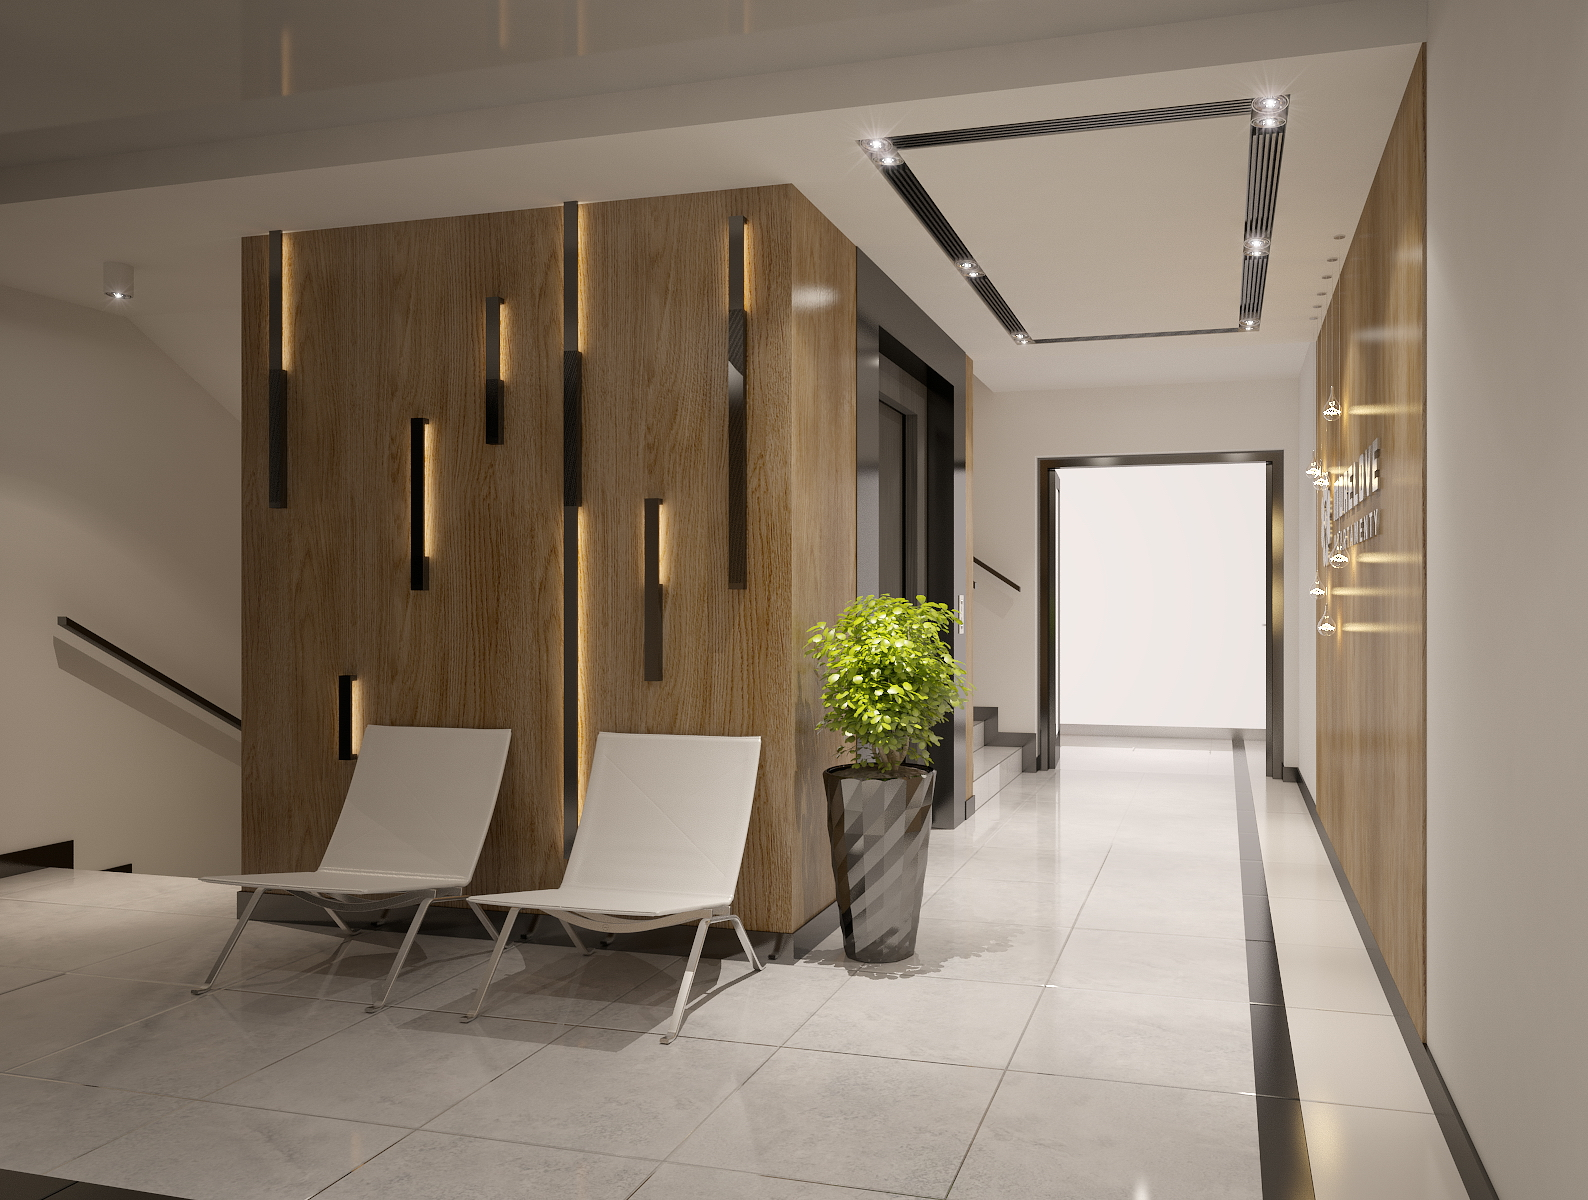 Apartment Design Models Of Apartments Building Entrance Hall Area Foyer Lobby With